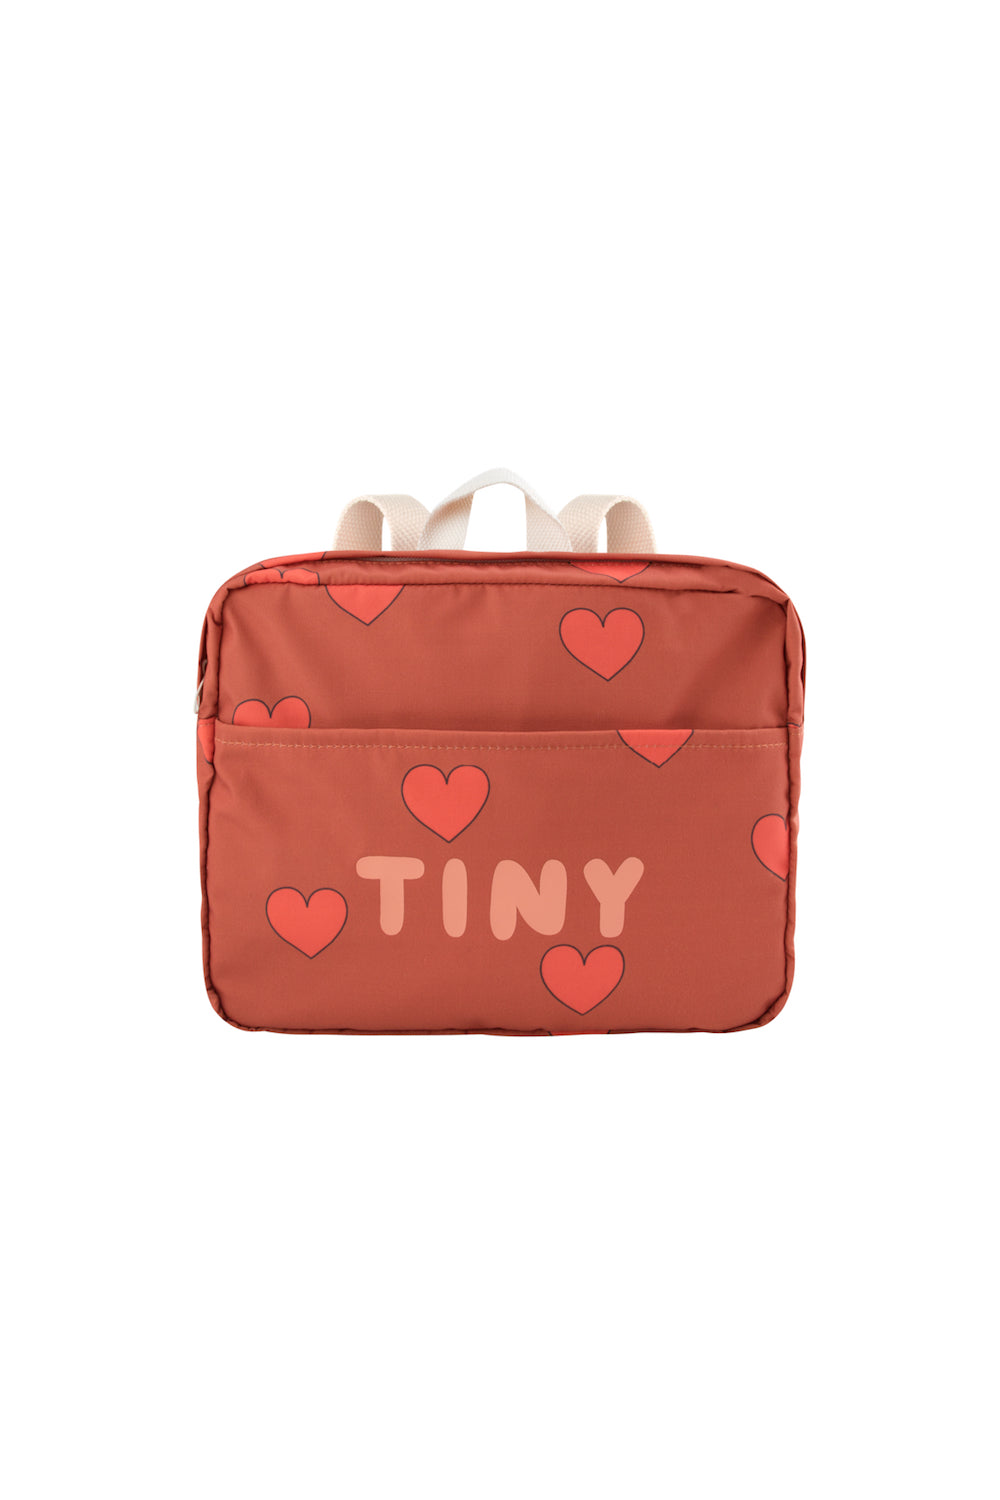 "Tiny Cottons ""Hearts"" Small Backpack - Sienna/Red"